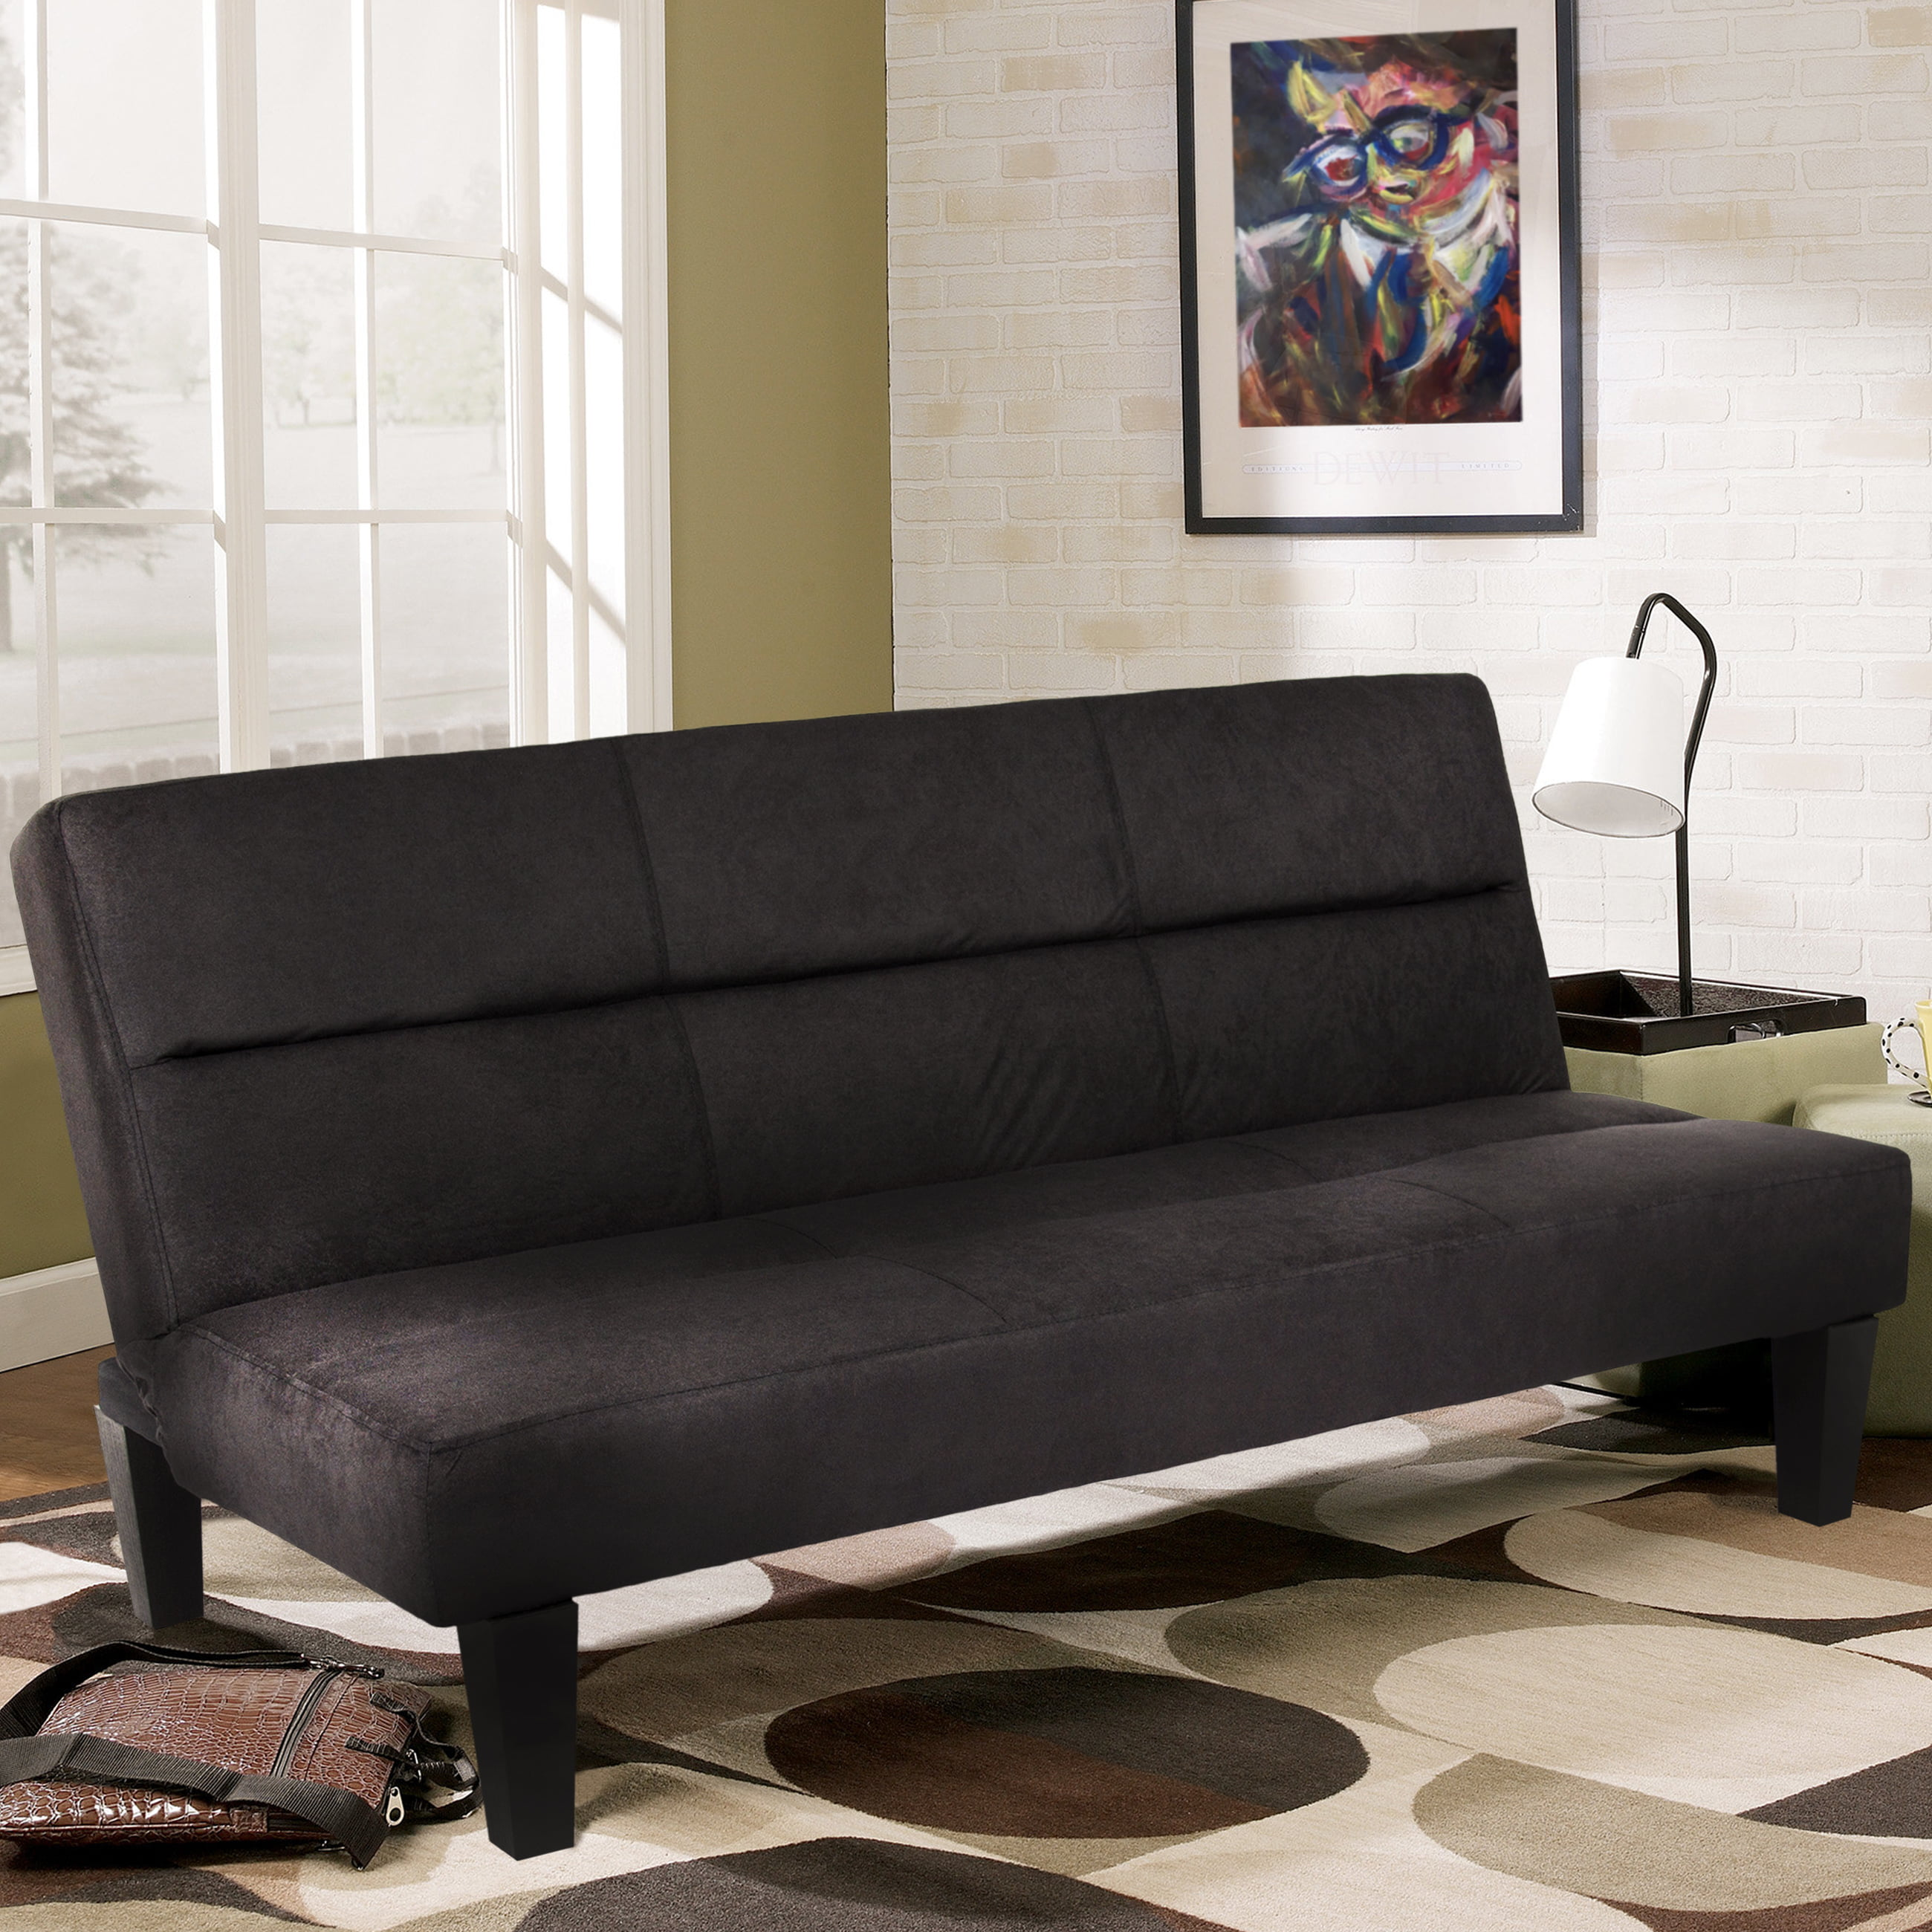 Best Choice Products Microfiber Futon Folding Couch Sofa Black